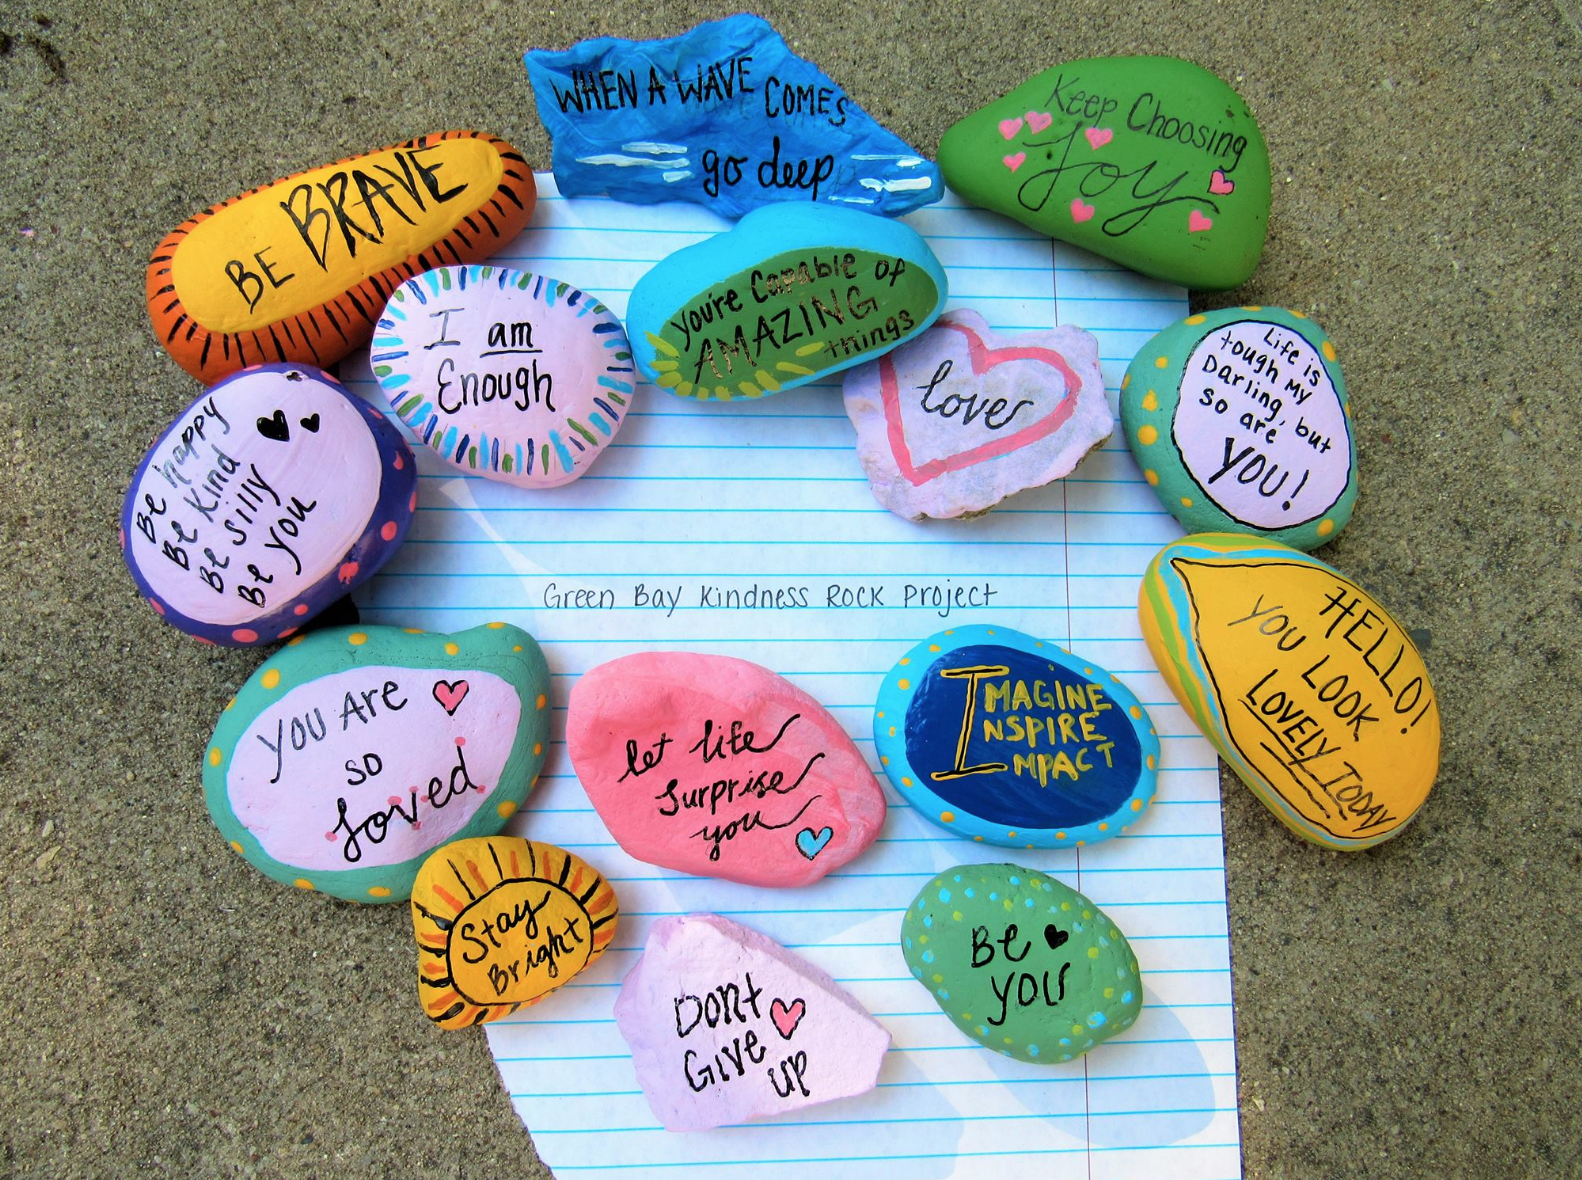 Green Bay Kindness Rock Project